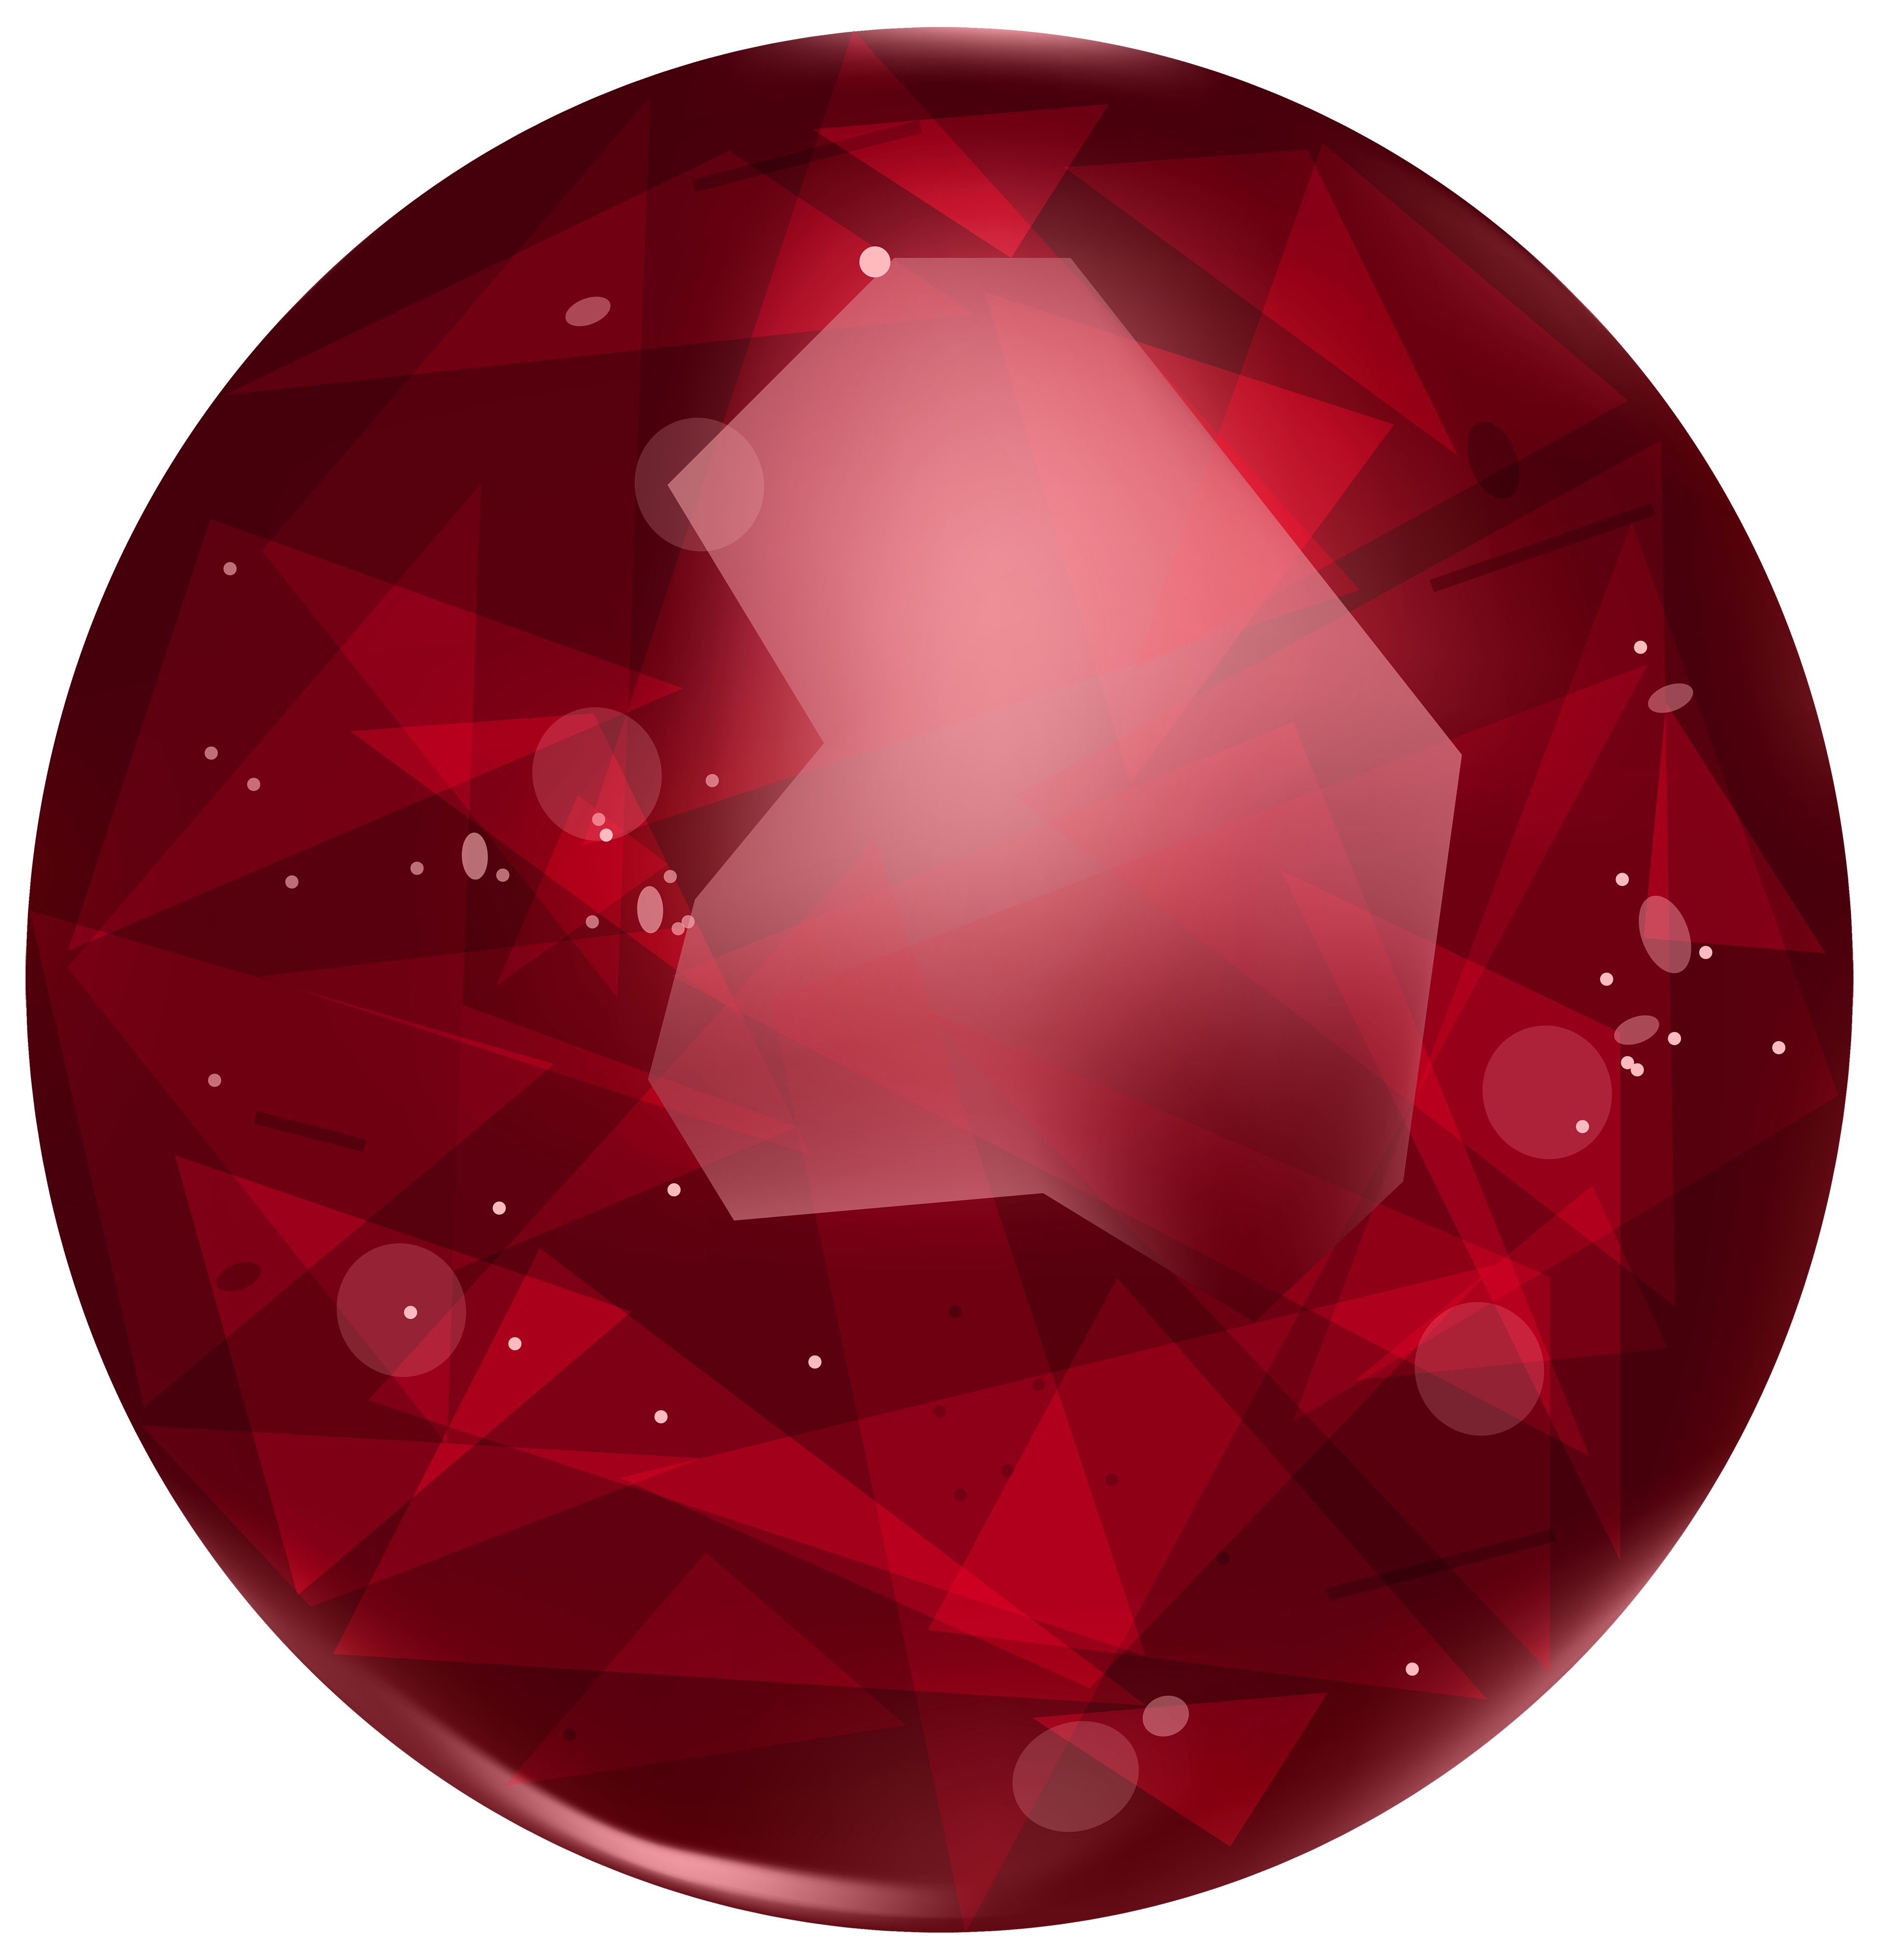 Cookies clipart round cookie. Oval ruby png best